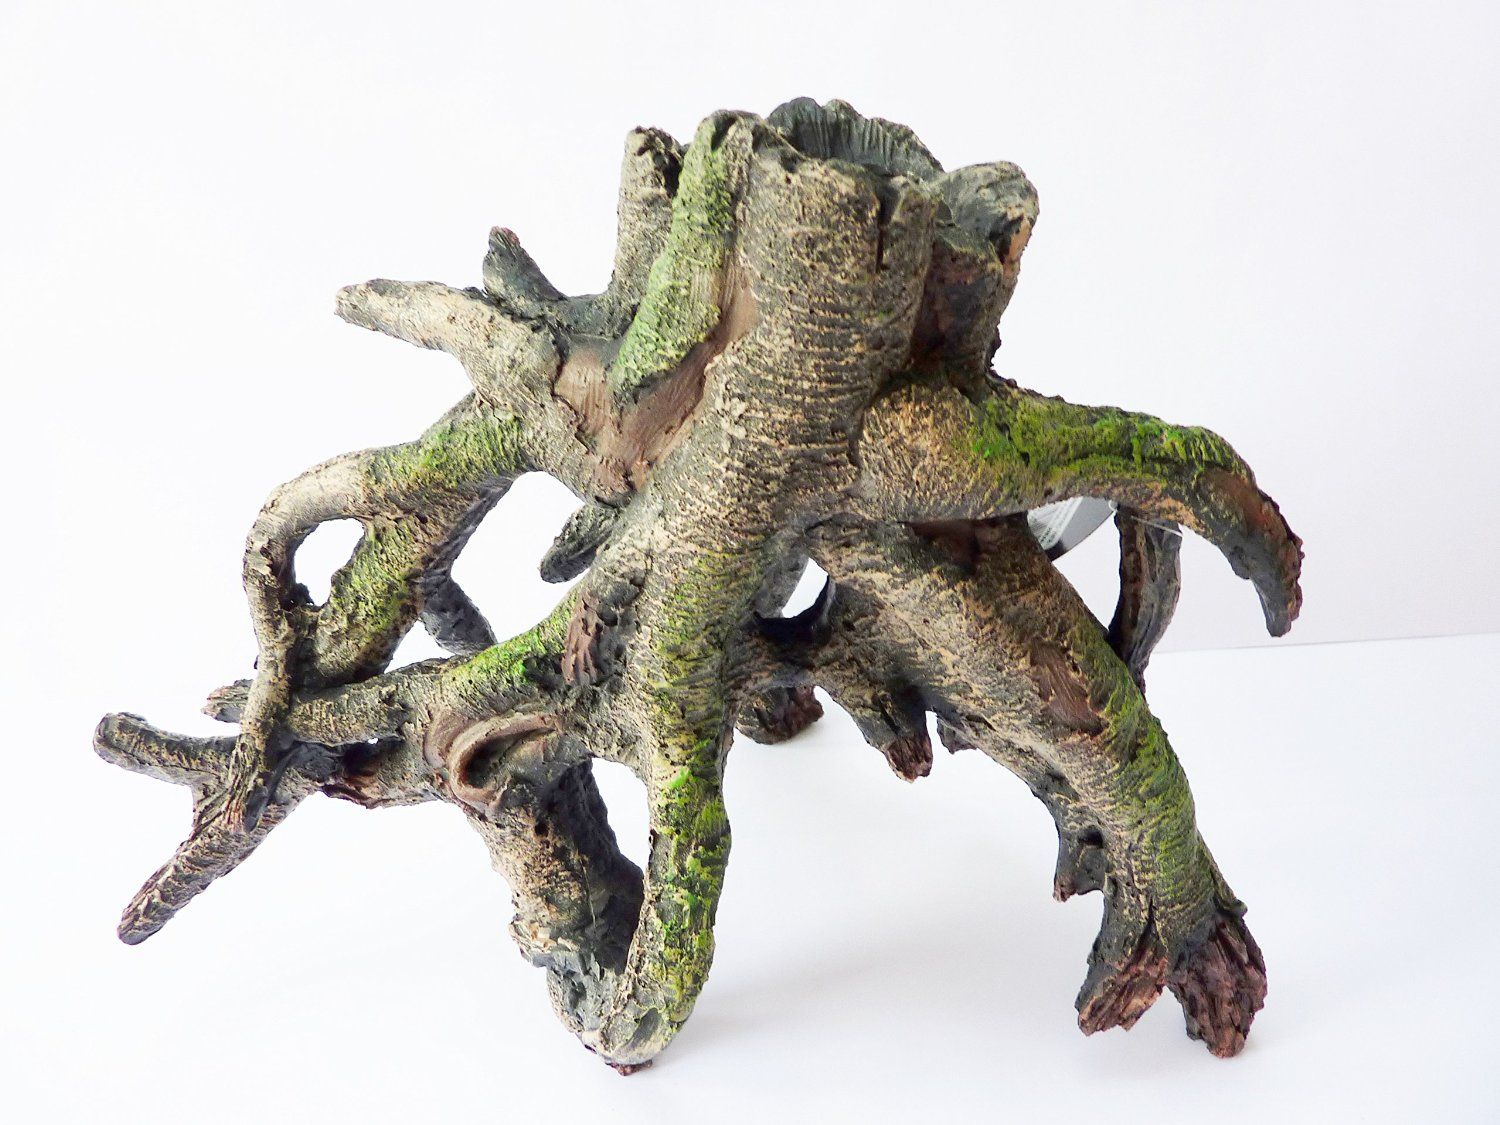 Dragon fish tank ornament - Highly Detailed Aquarium Root Ornament Suitable For All Types Of Fish Tank Amazon